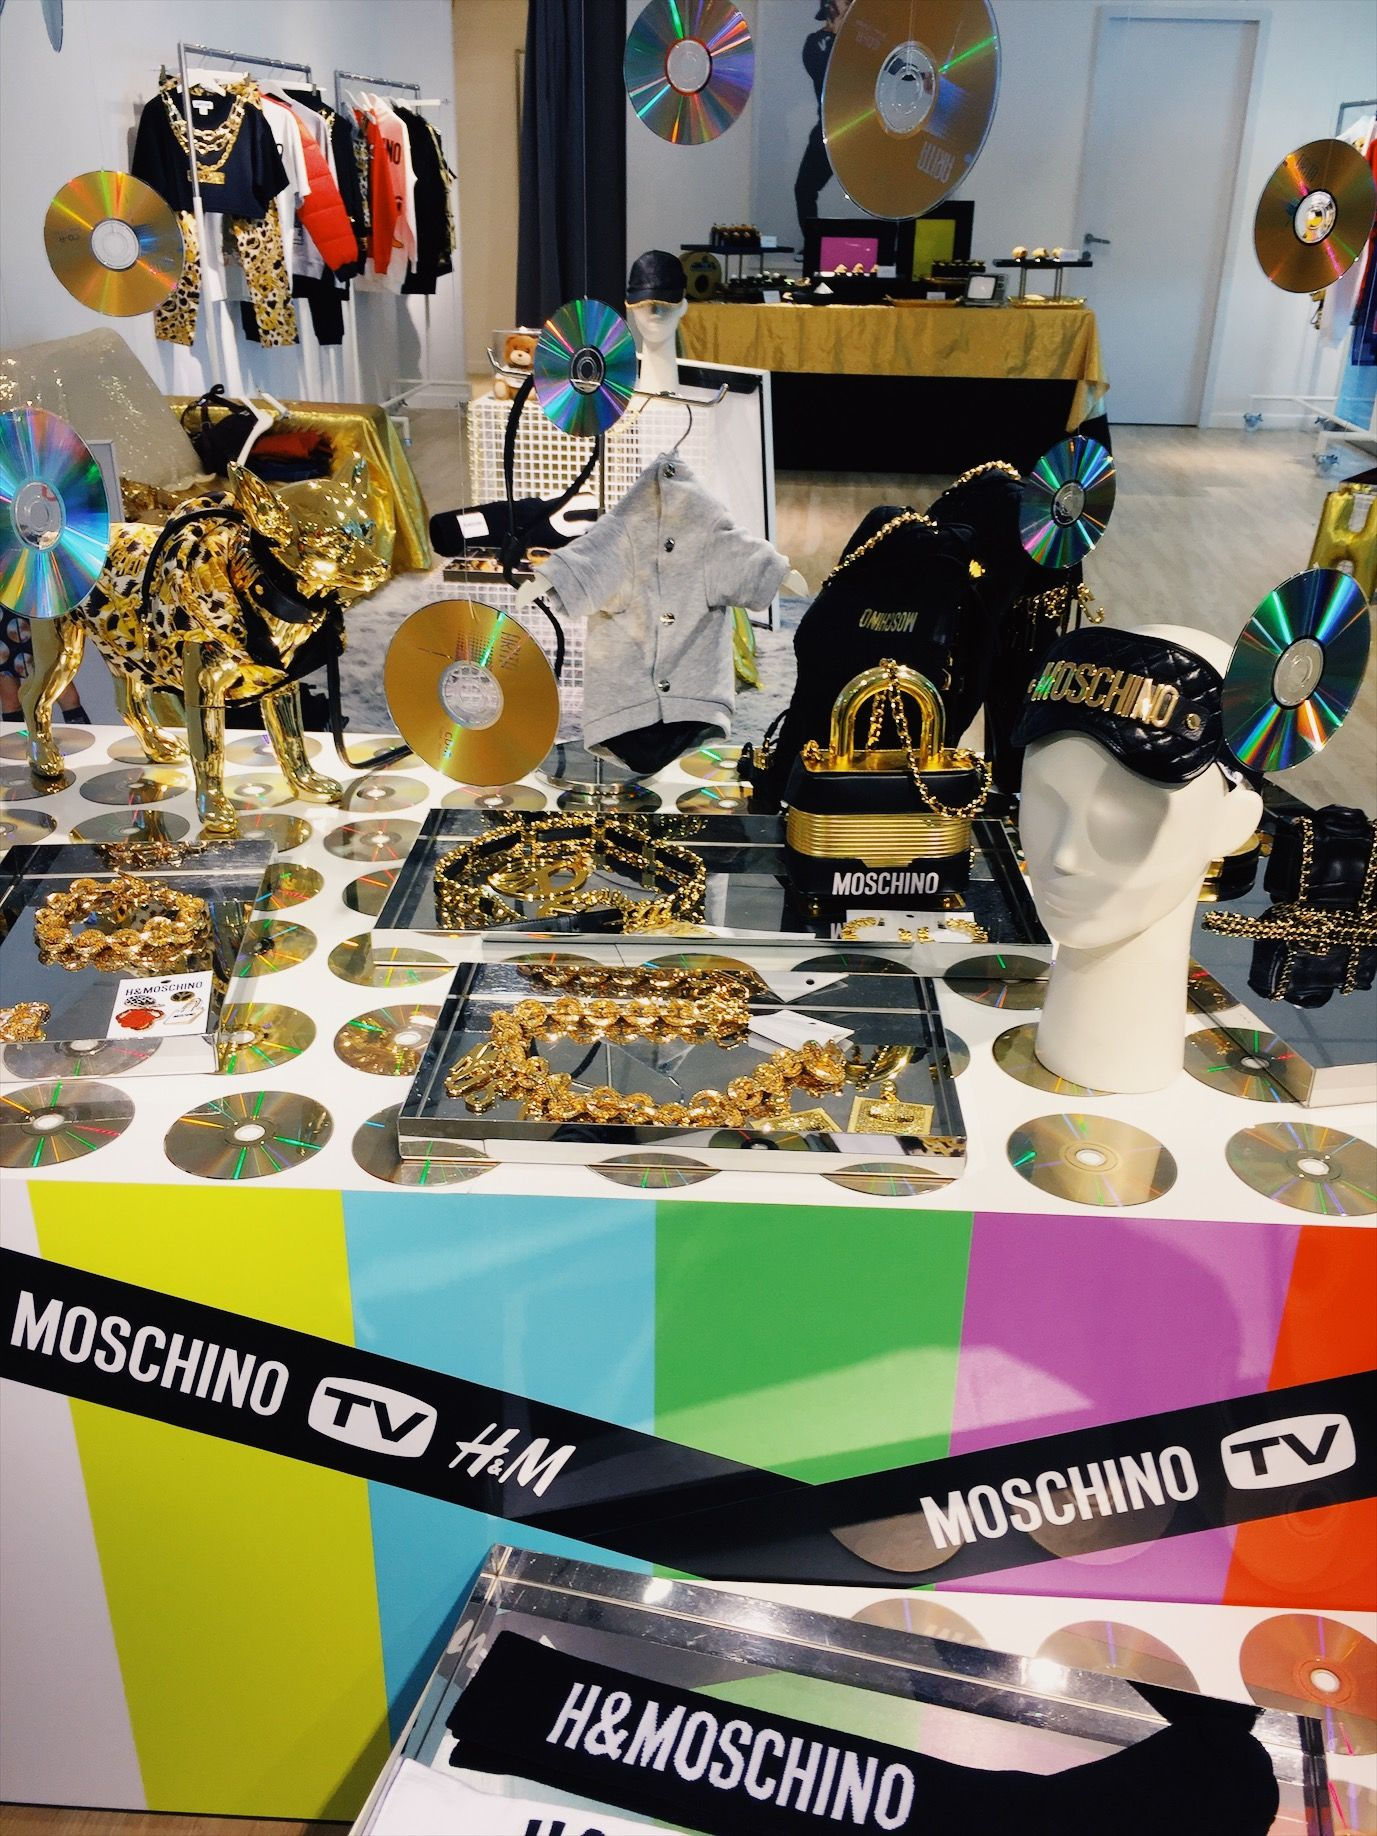 MOSCHINO [tv] H&M dan Koleksi '90an yang Party!